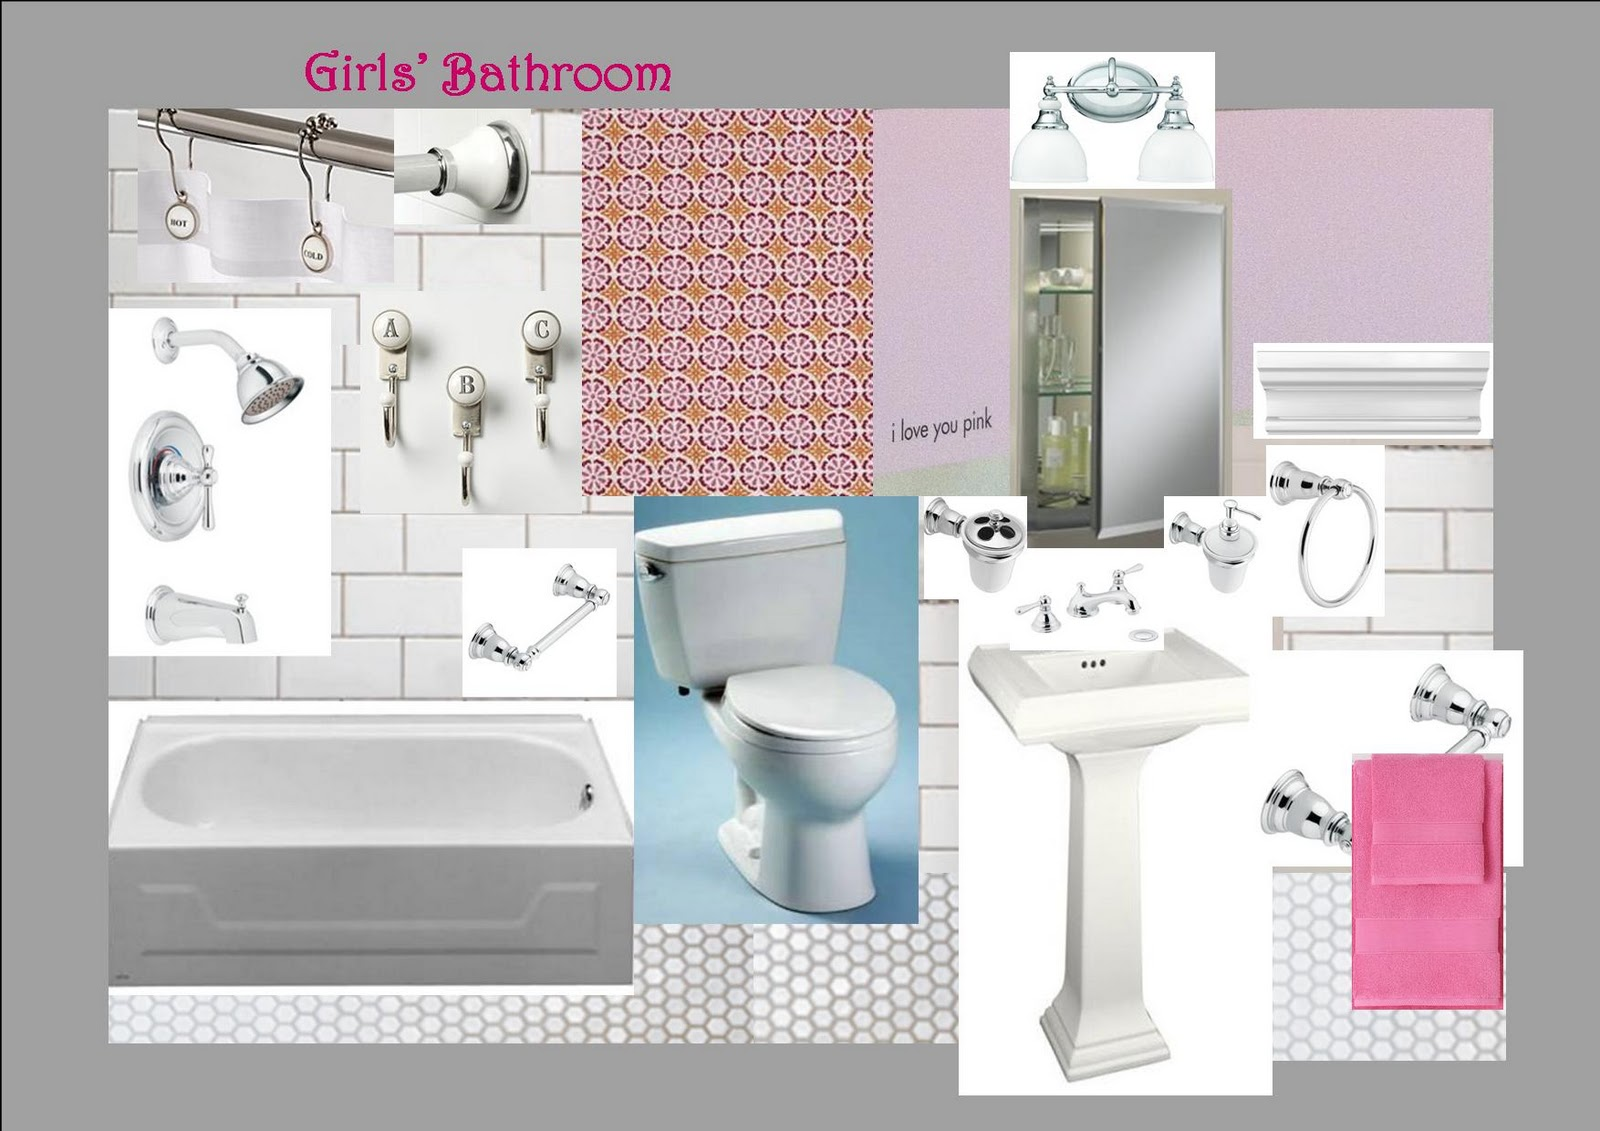 12 devonshire: The Girls\' Bathroom Design Plan